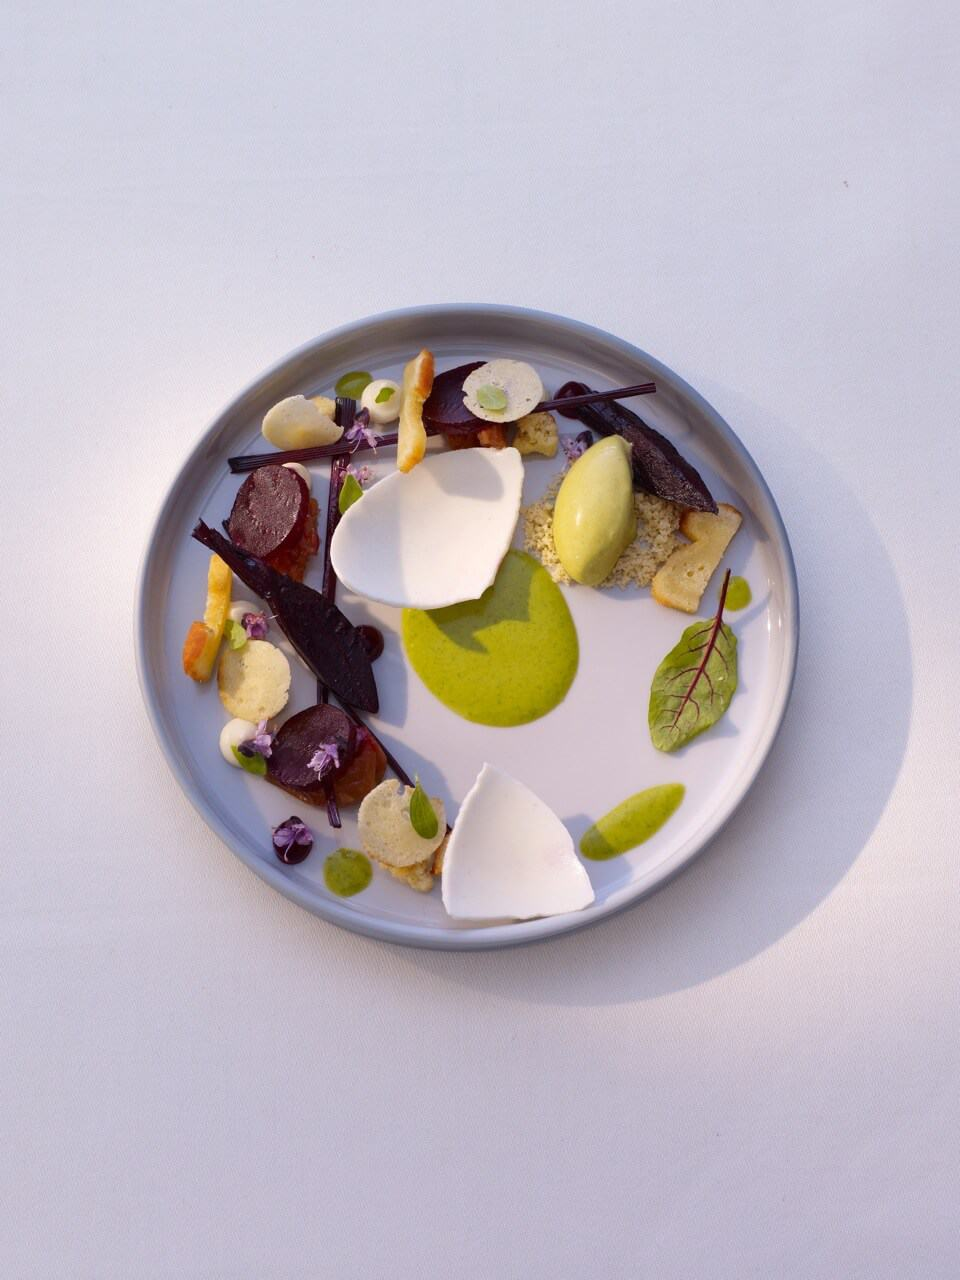 Pistachio Ice Cream Recipe With Gorgonzola, Beetroot & Umeboshi Plum